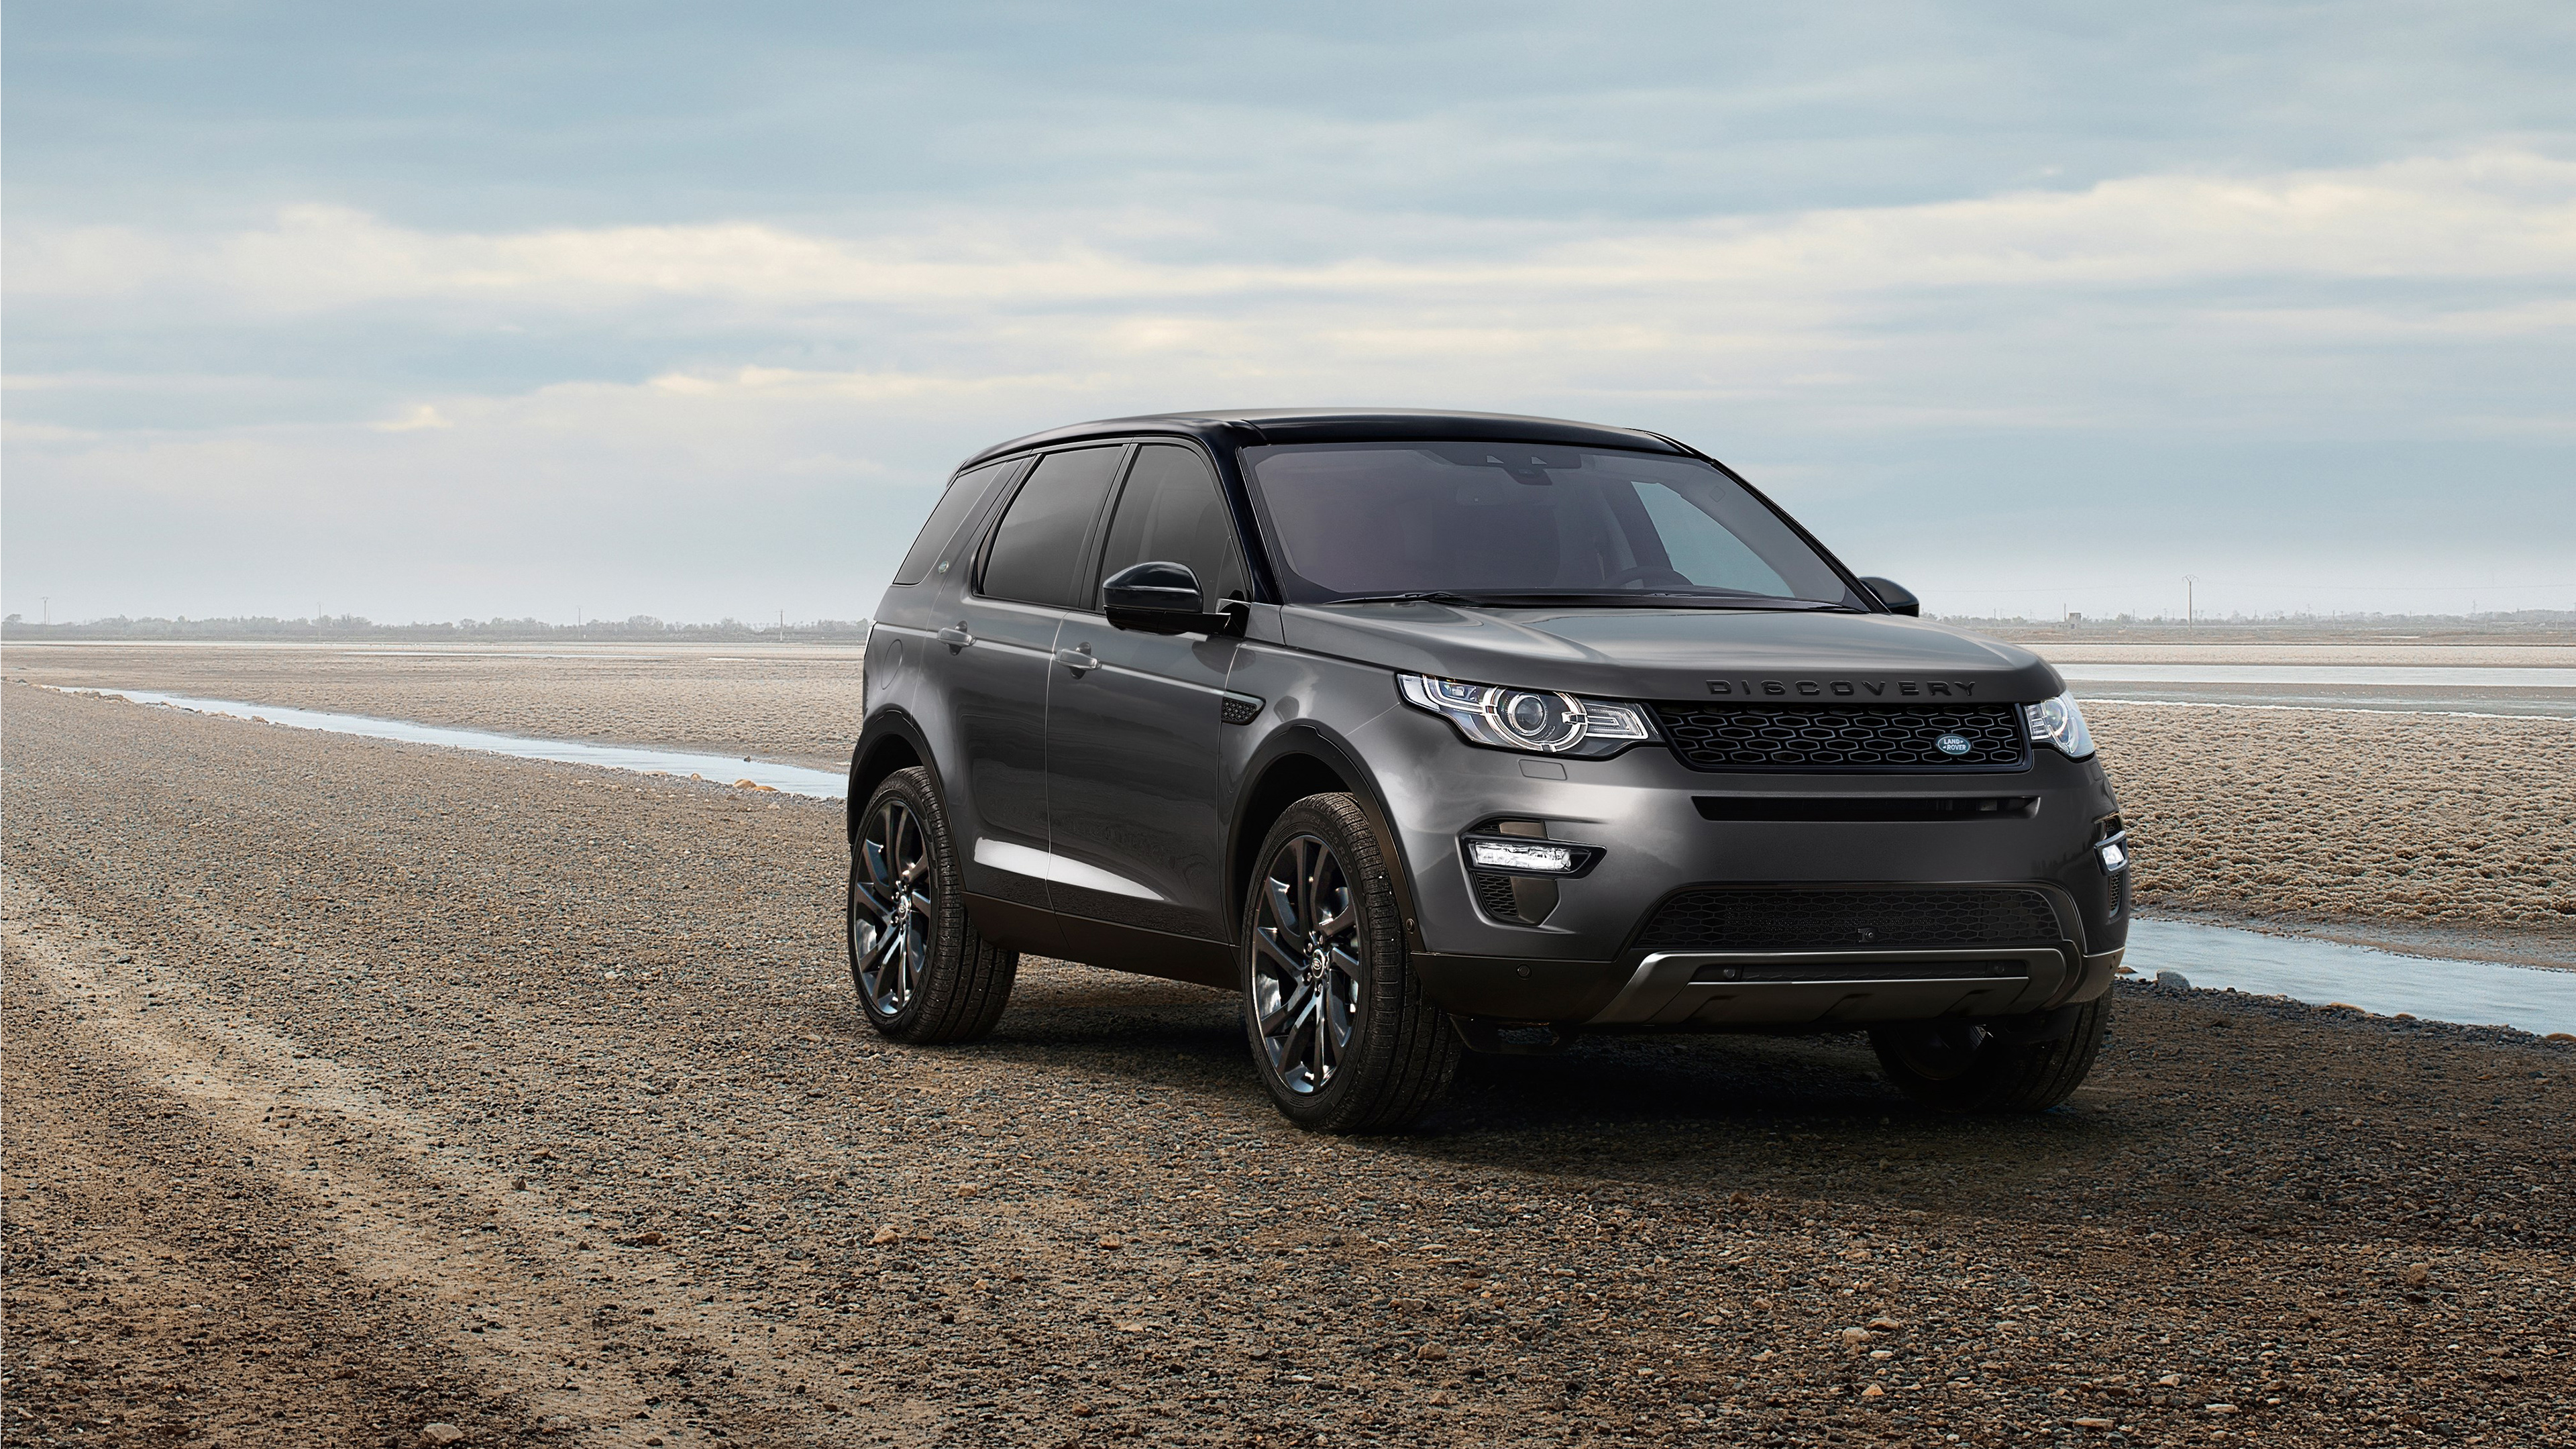 Land Rover Car Logo >> 2017 Land Rover Discovery Sport 4K Wallpaper | HD Car Wallpapers | ID #6862